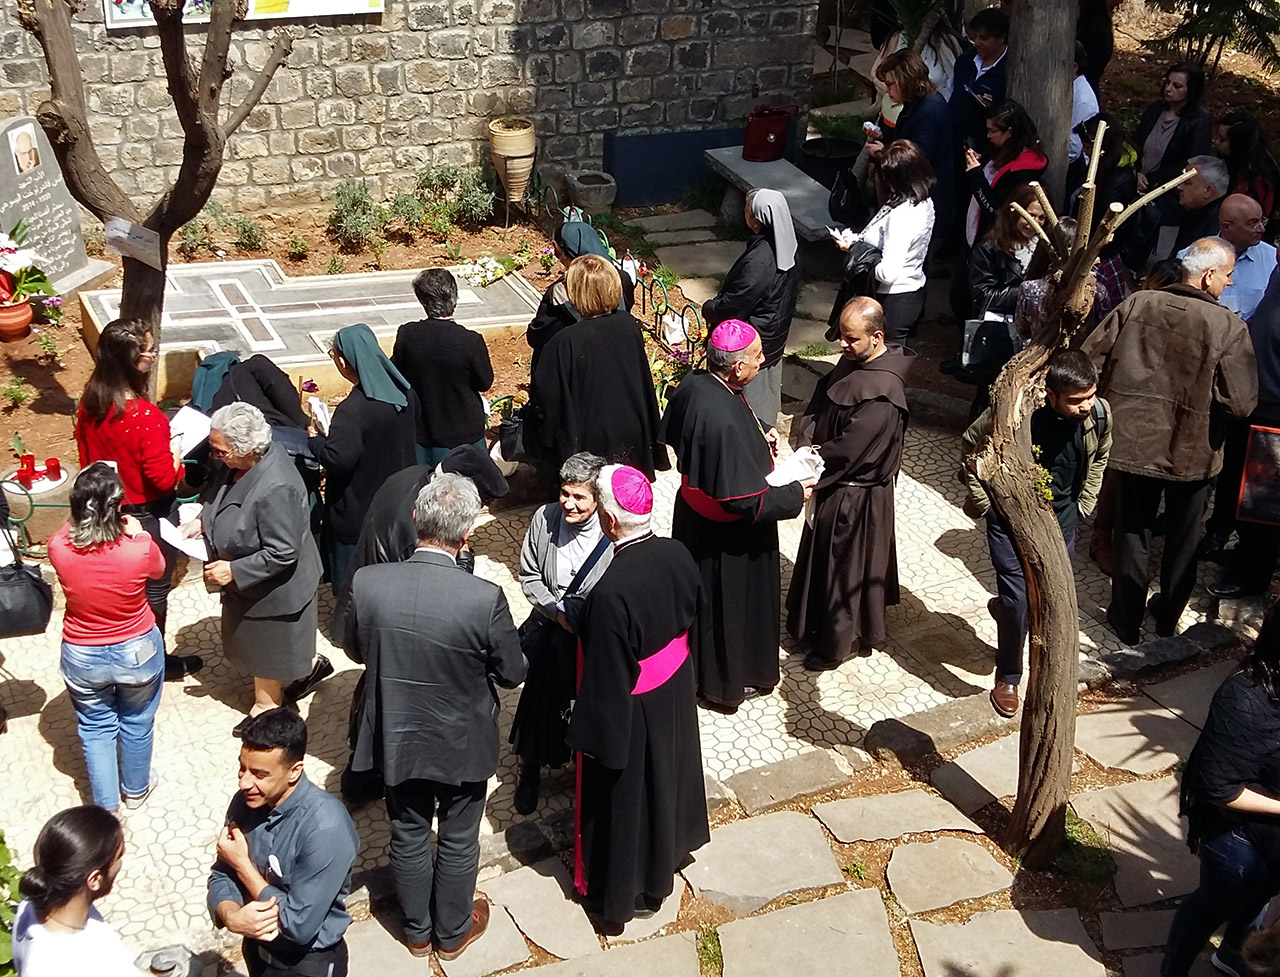 Address of Fr Arturo Sosa, on the occasion of the commemoration of the 5th anniversary of the martyrdom of Fr. Frans van der Lugt (Homs, 6 April 2019)